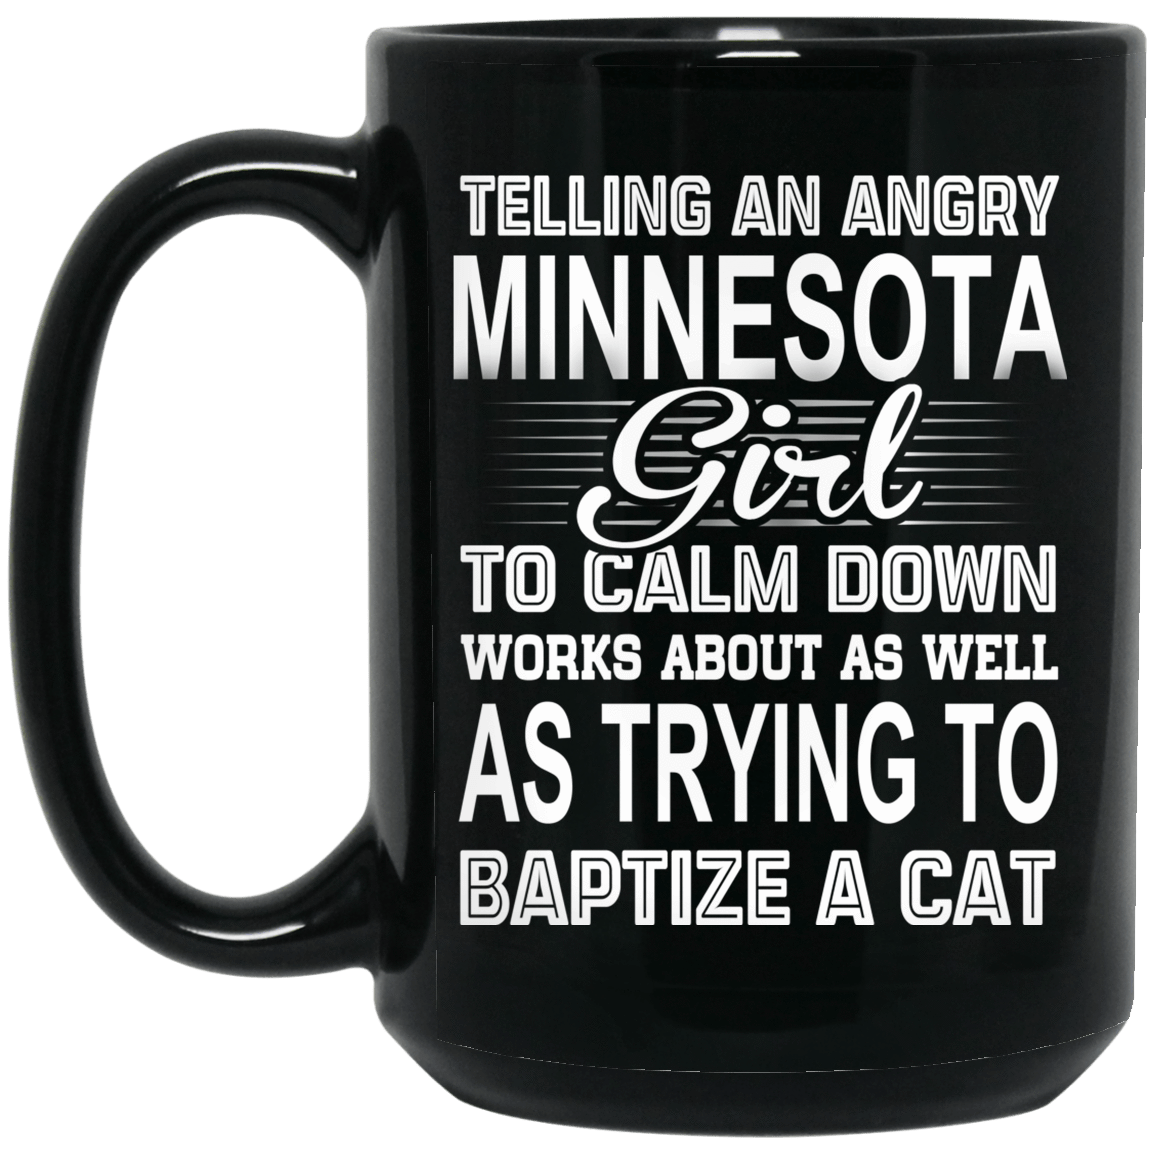 Telling An Angry Minnesota Girl To Calm Down Works About As Well As Trying To Baptize A Cat Mug 1066-10182-76151632-49311 - Tee Ript